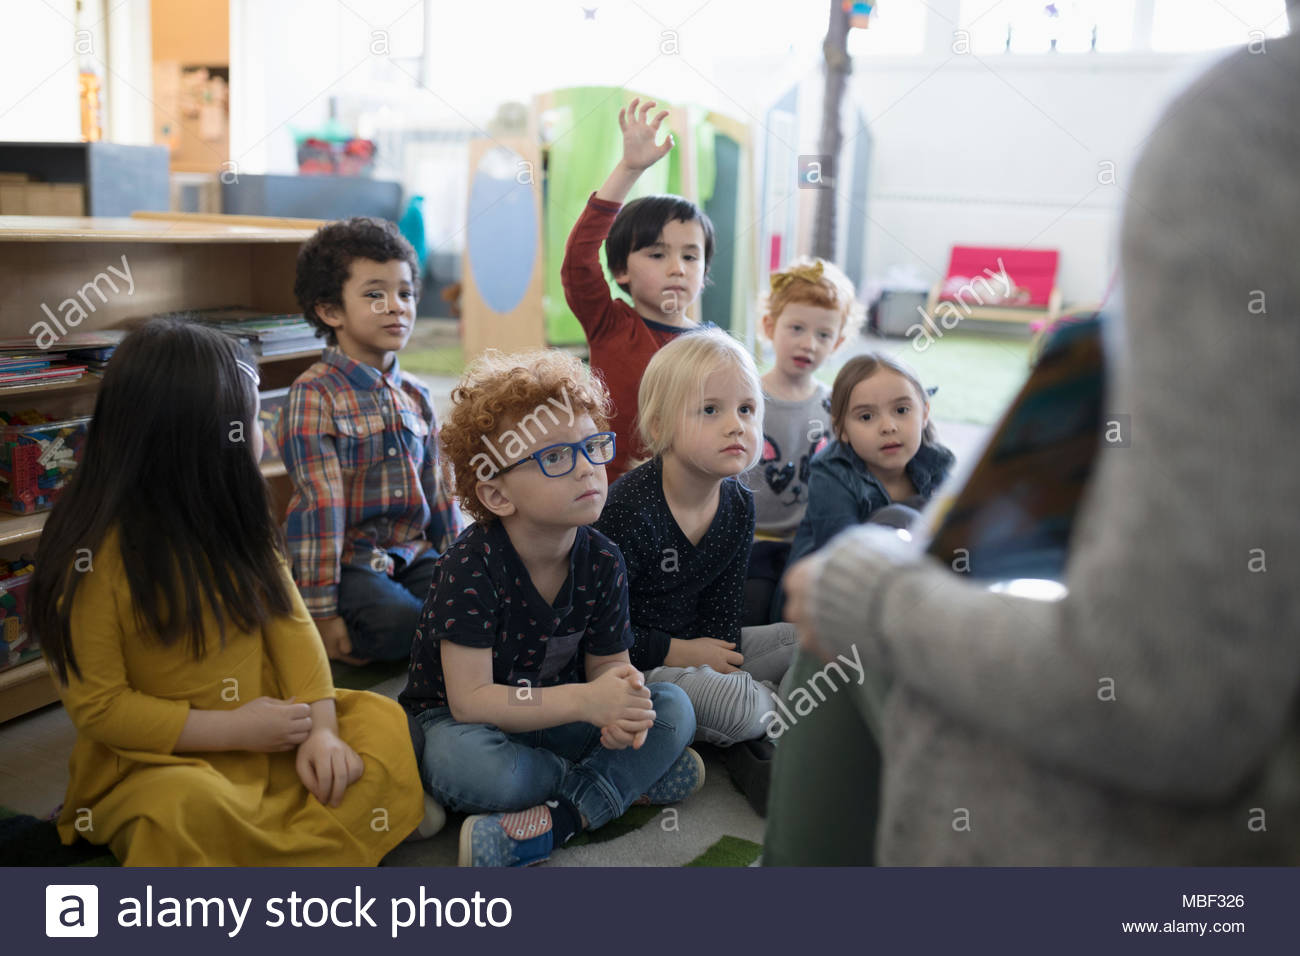 Preschool students listening to story time in classroom - Stock Image